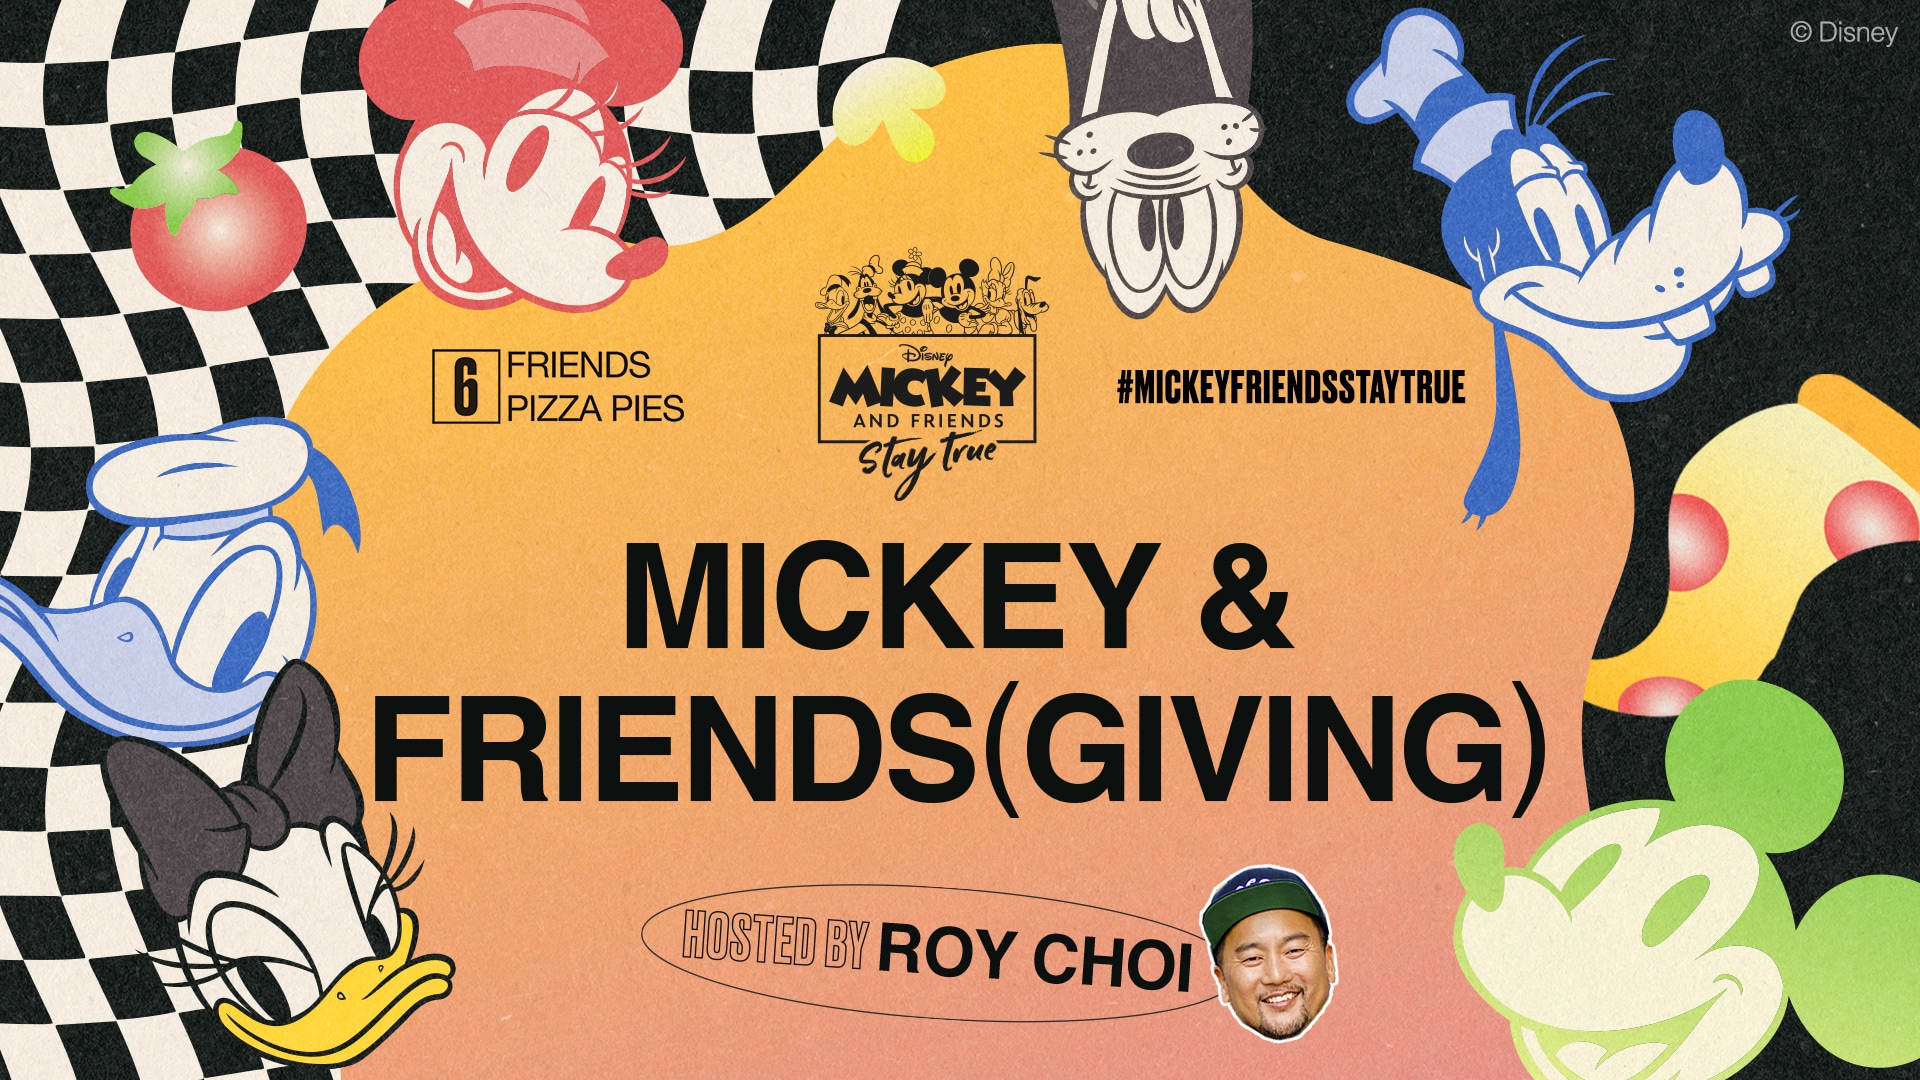 Celebrate Mickey & Friends(giving) with Roy Choi